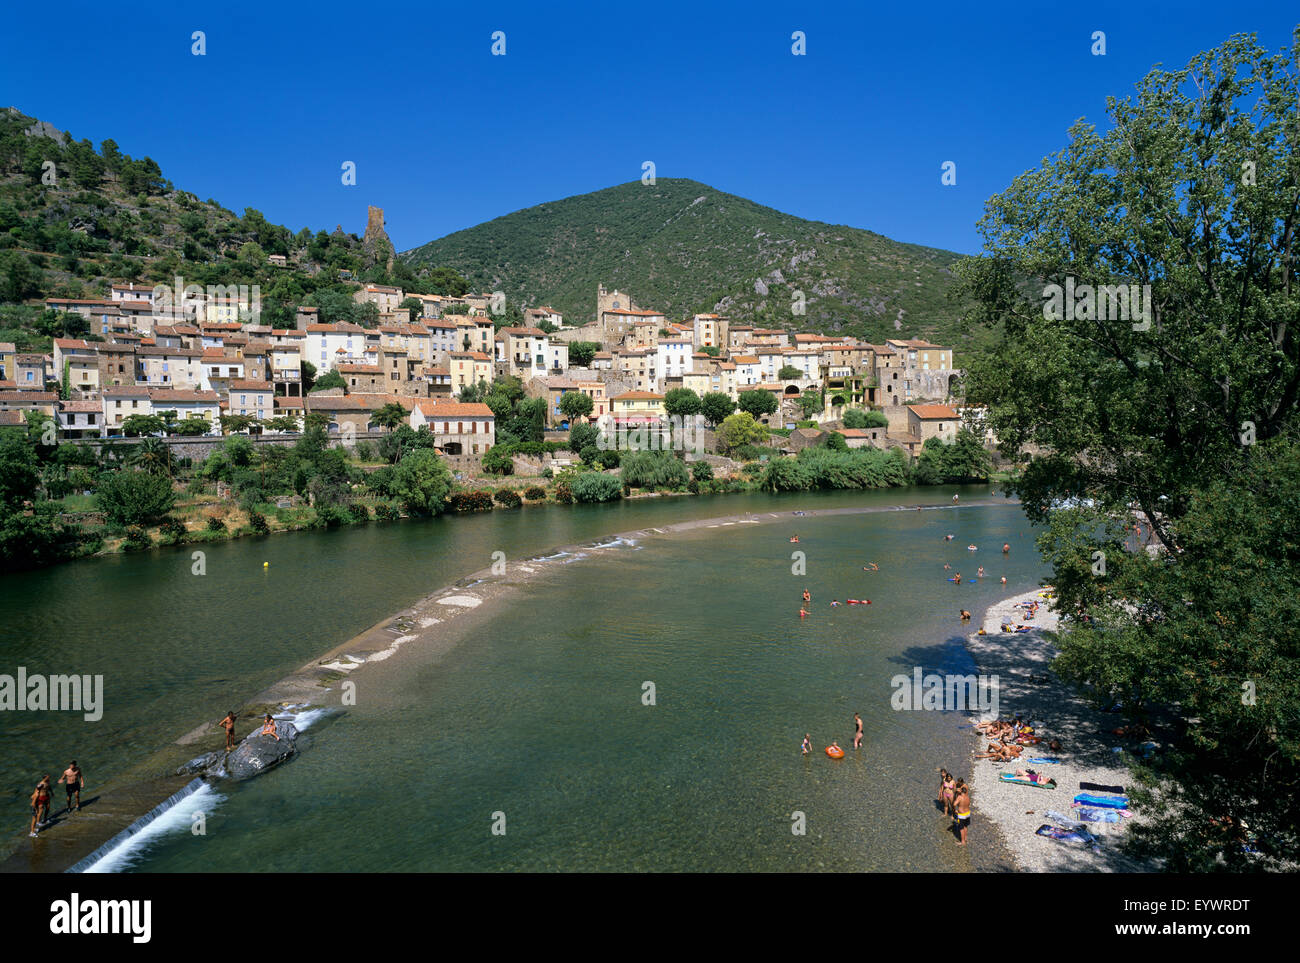 Village on the Orb River, Roquebrun, Herault department, Languedoc-Roussillon, France, Europe - Stock Image